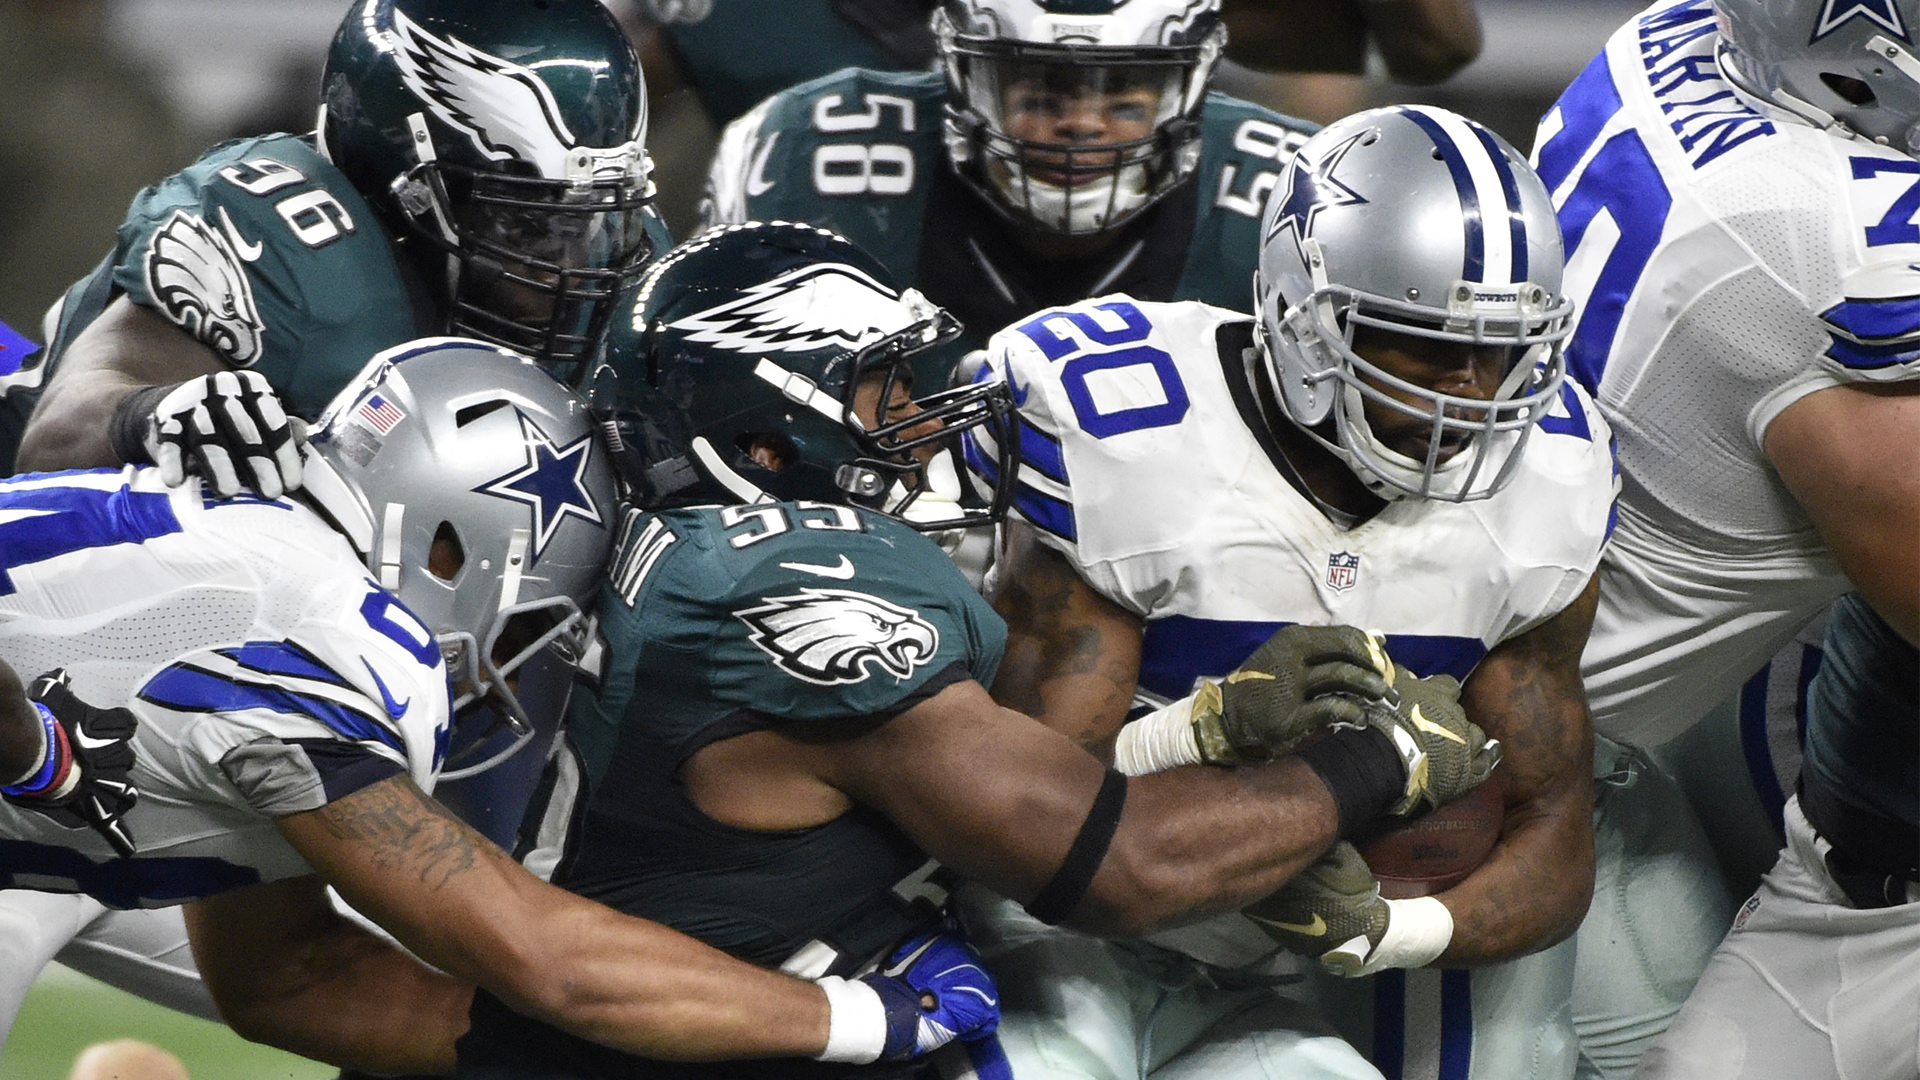 Philadelphia Eagles' Brandon Graham (55), Jordan Hicks (58) and Bennie Logan (96) attempt to tackle Dallas Cowboys' Darren McFadden (20) on a run in the second half of an NFL football game Sunday, Nov. 8, 2015, in Arlington, Texas. (AP Photo/Michael Ainsworth)